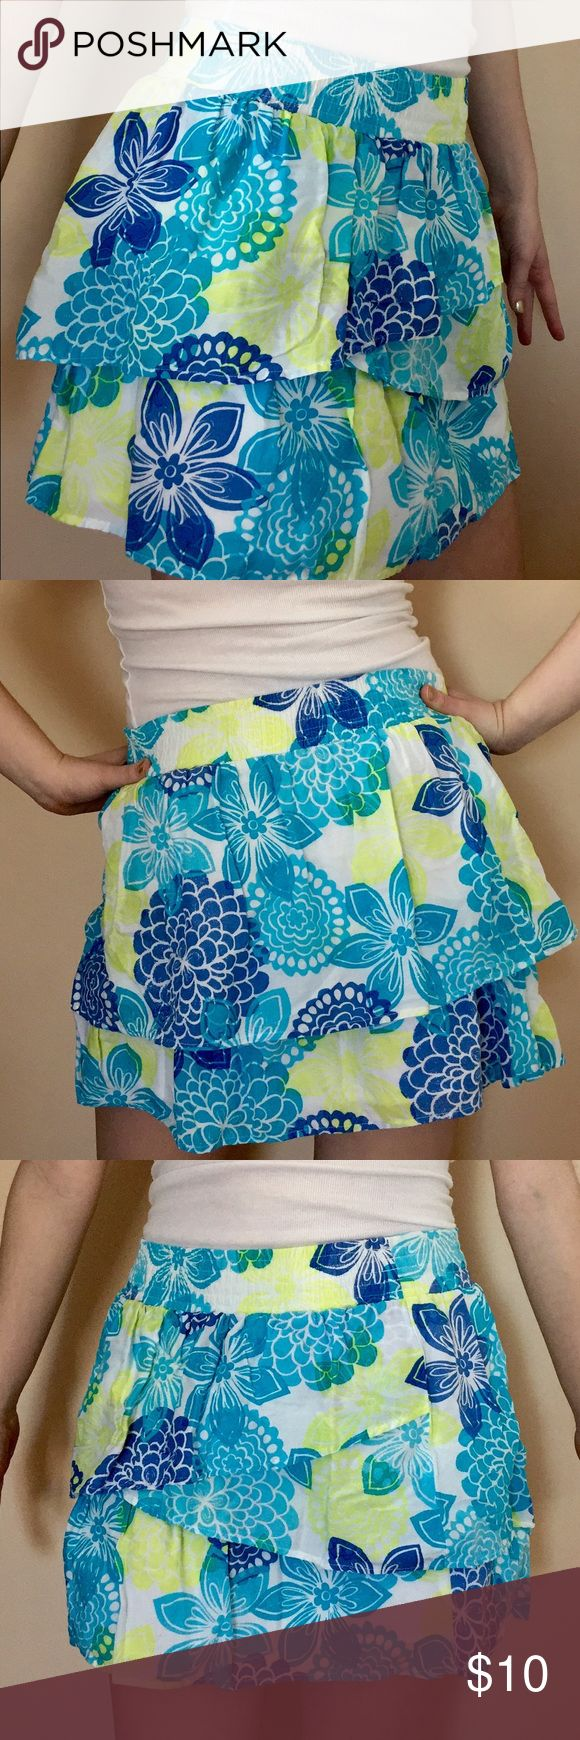 Aeropostale Floral Skirt Worn very few times. Has a white layer underneath. Pairs nicely with a tank top. Aeropostale Skirts